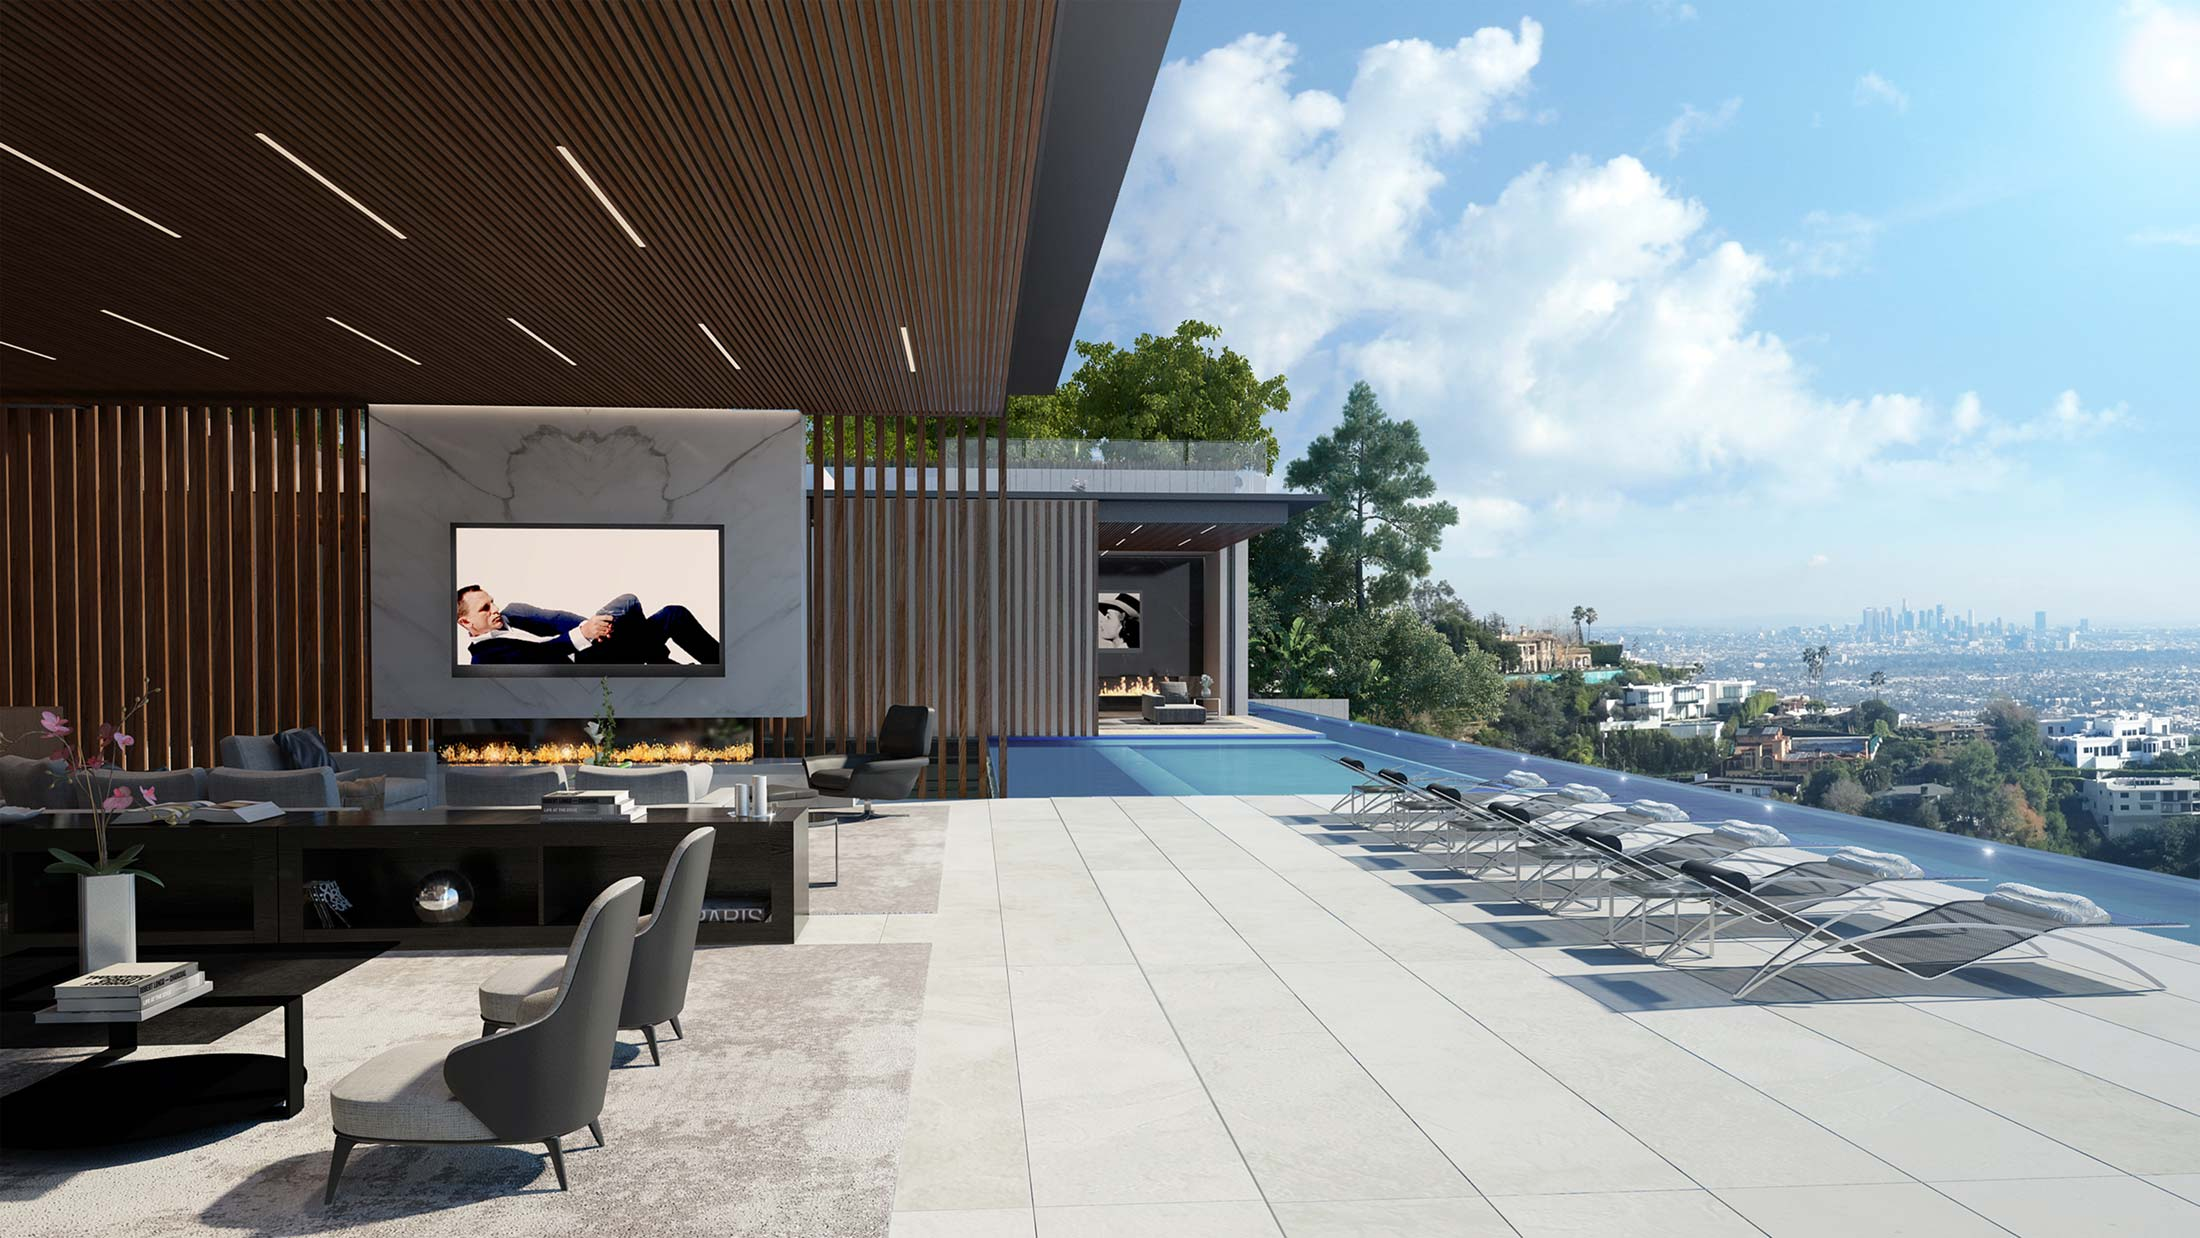 modern-architecture-residential-inspirational-view-indoor-outdoor-shubindonaldson-1169hillcrest-2